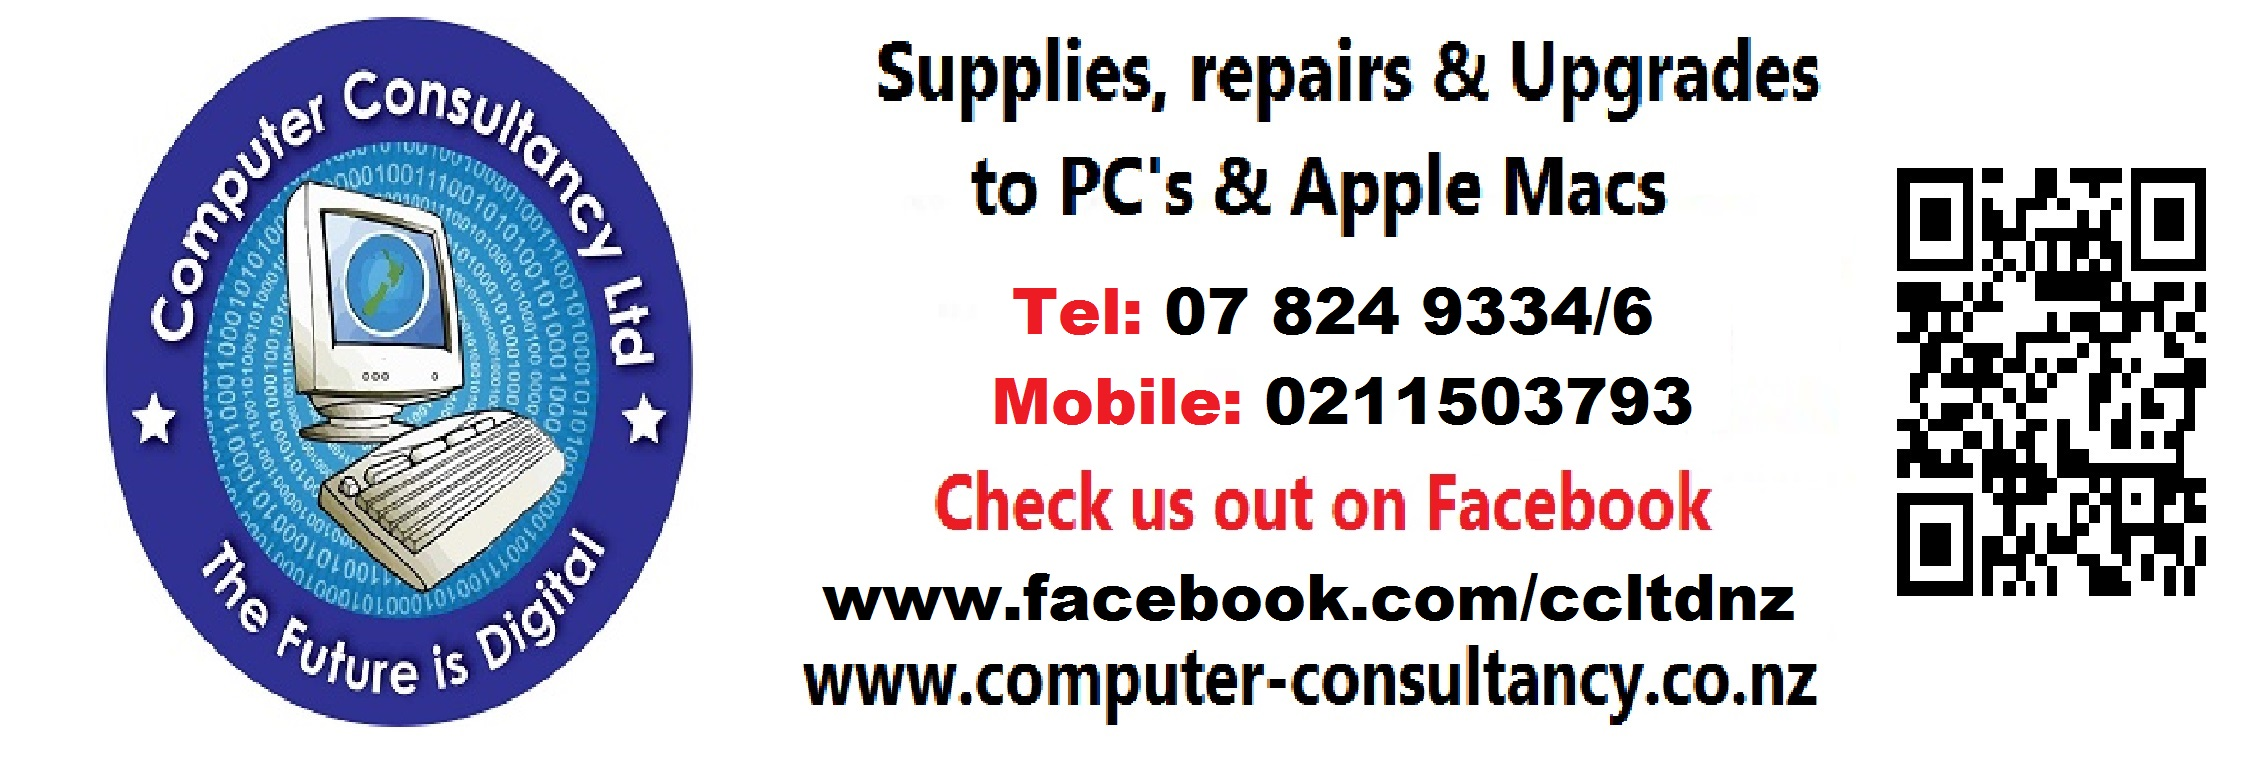 The trust would like to thank the team at Computer Consultancy for there on going help and support.